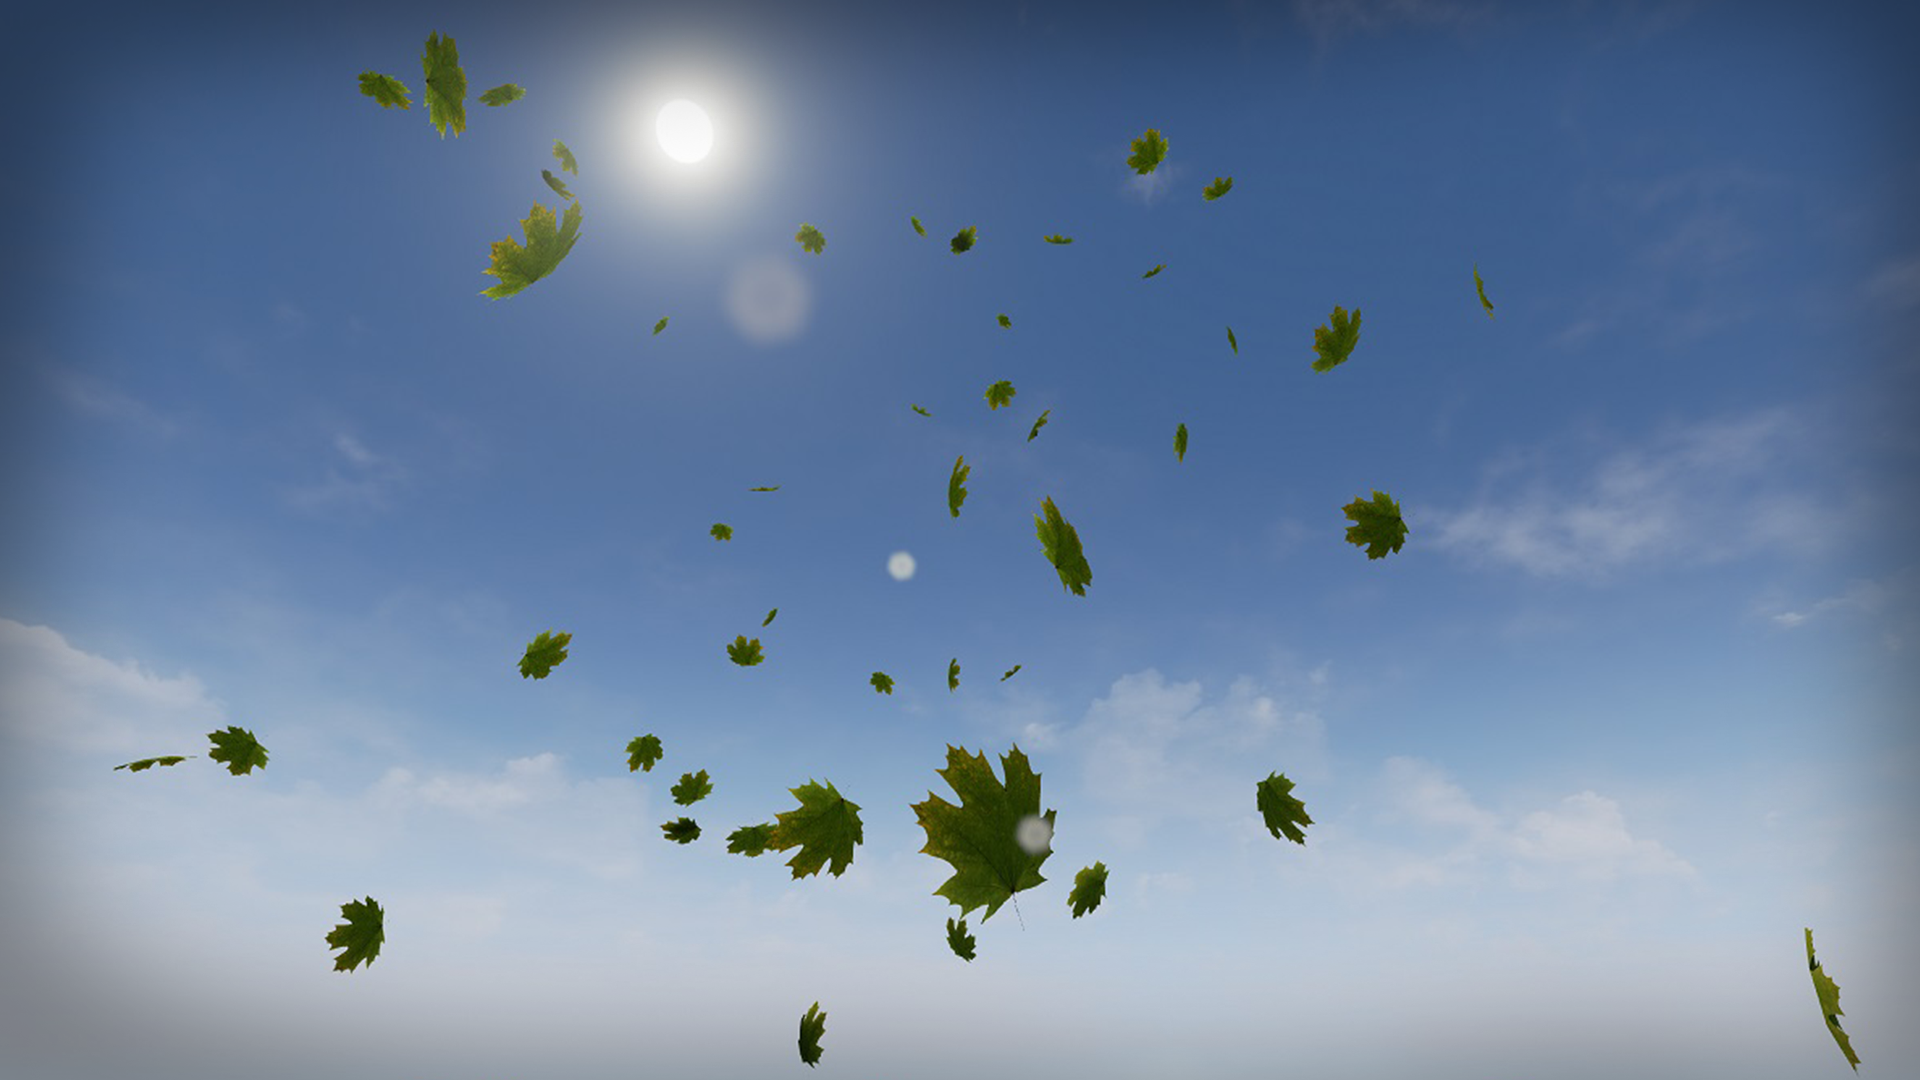 Falling Leaves VFX Pack by Ben Burkart